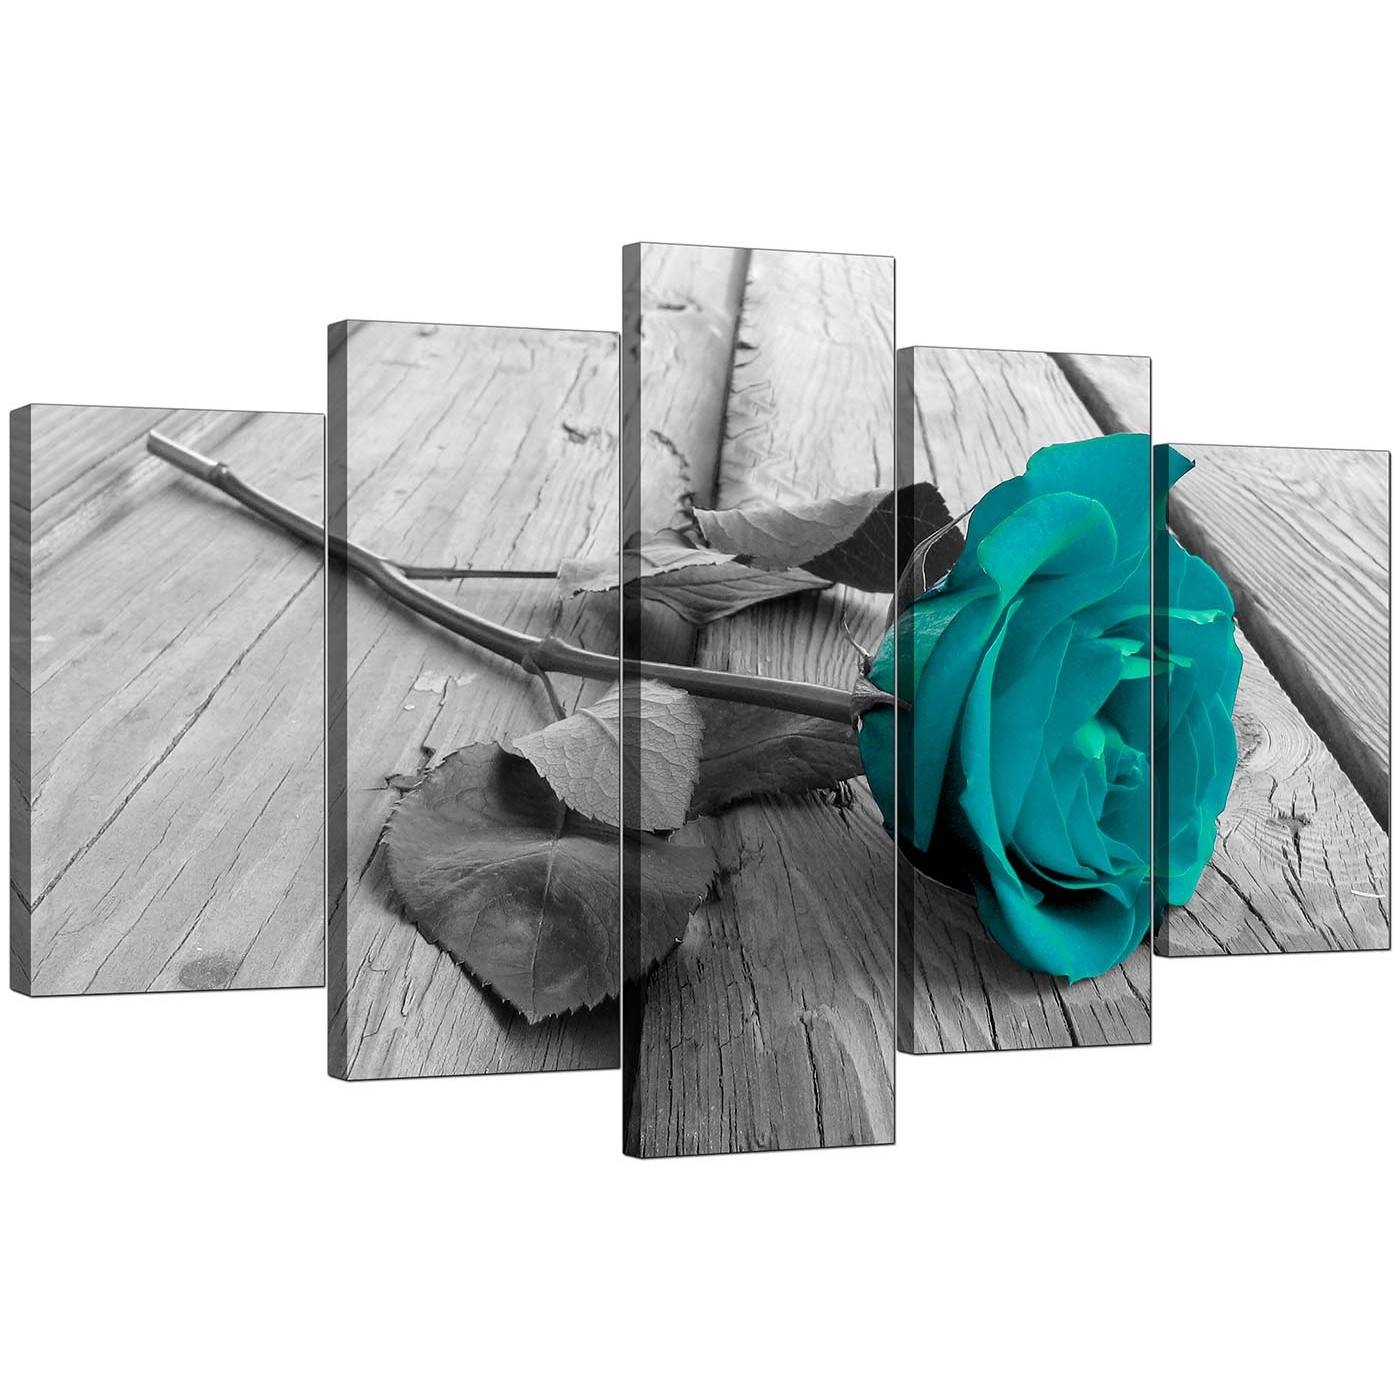 Extra Large Teal Rose Canvas Prints Set Of 5 In Black & White Inside Latest Cheap Black And White Wall Art (View 13 of 20)